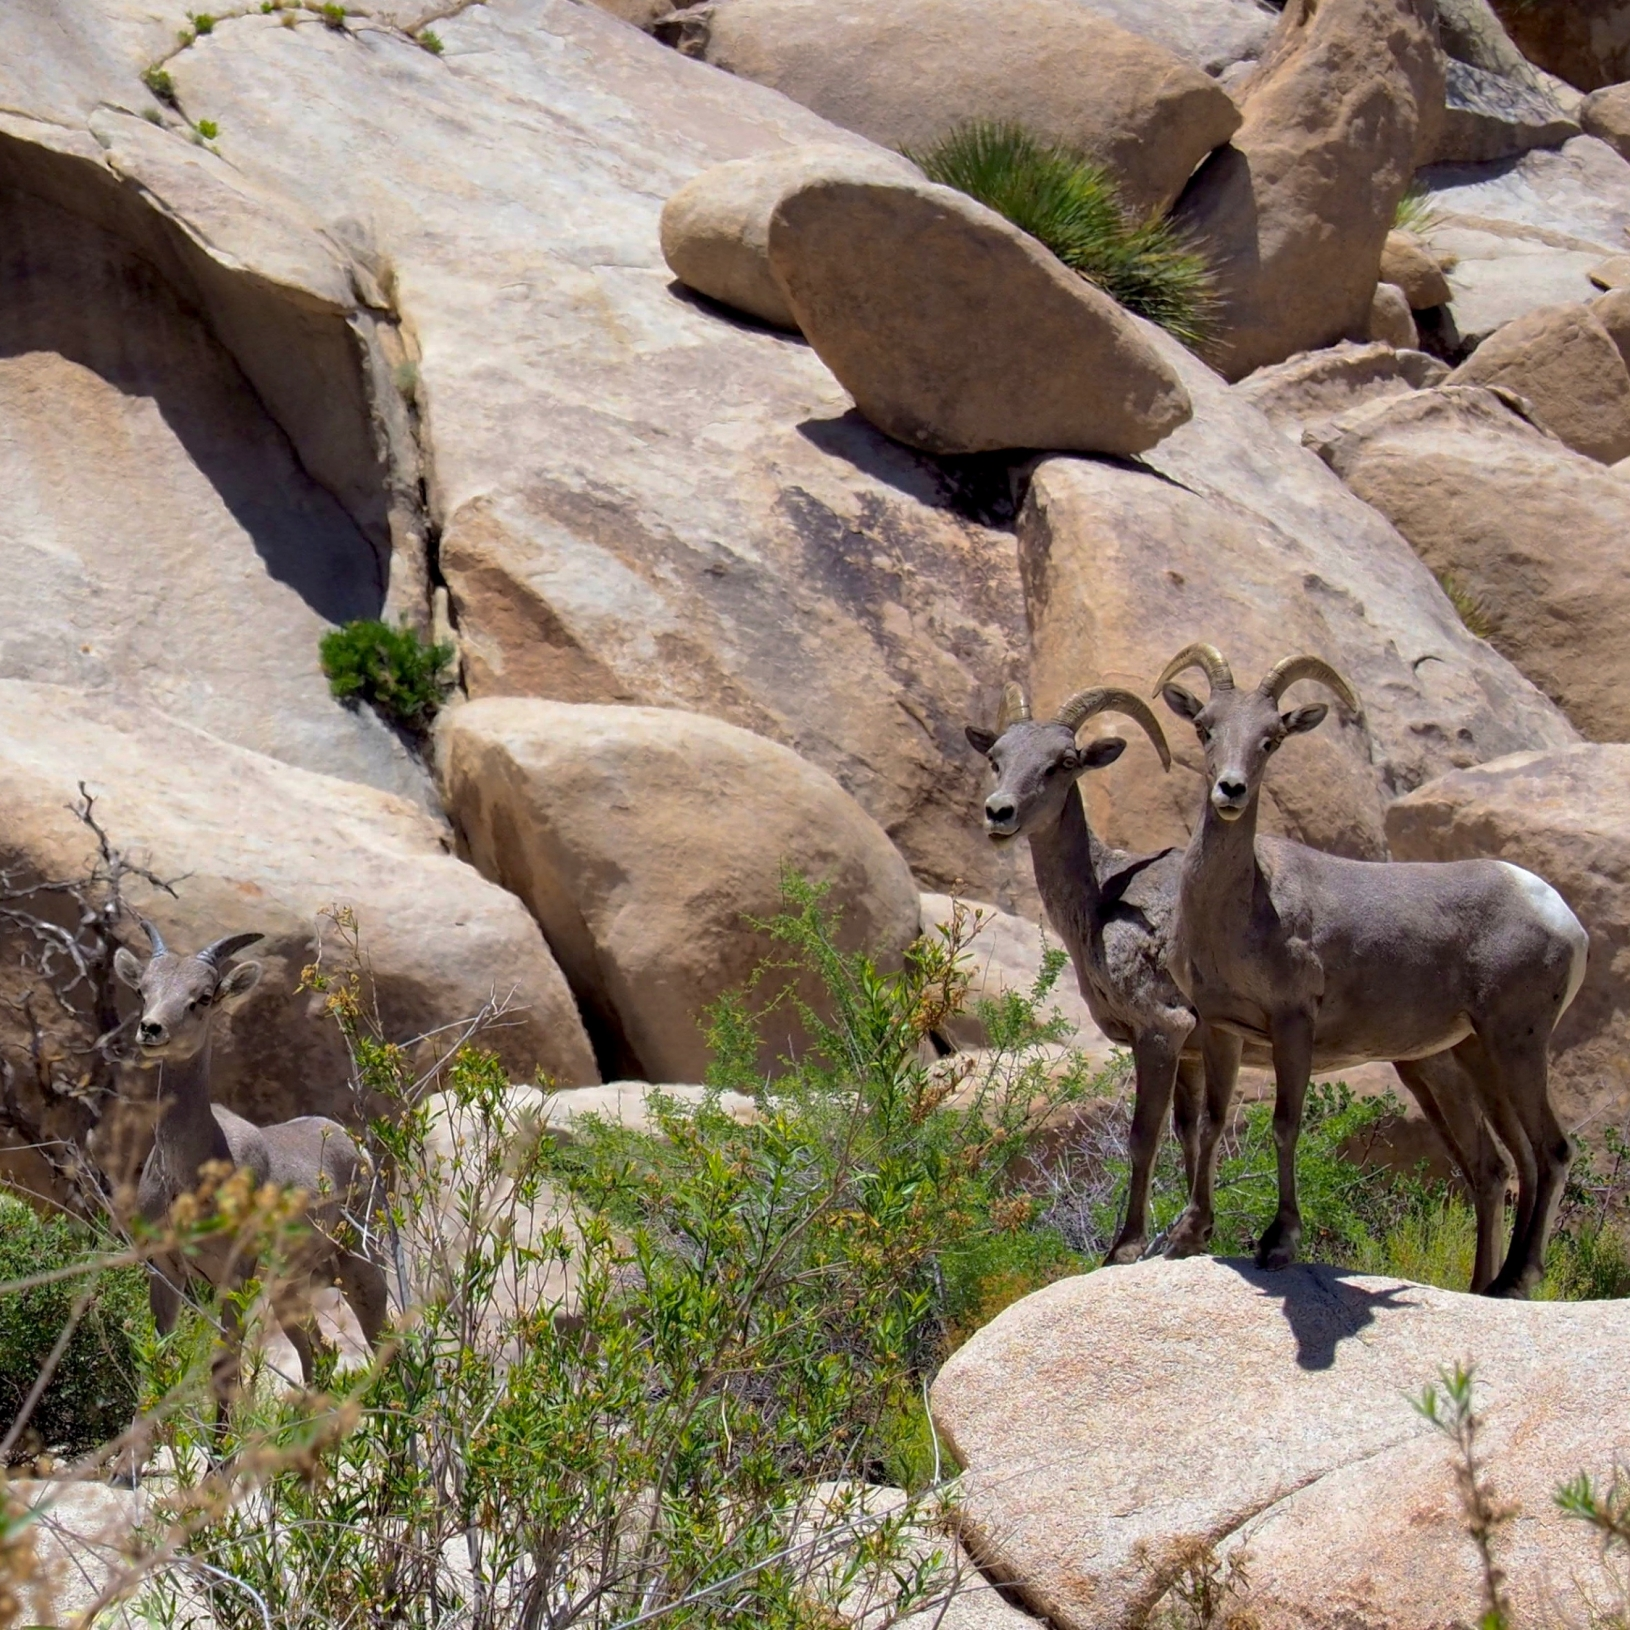 Joshua Tree National Park, June 12, 2017, Barker Dam Trail, Three Great Horn Sheep